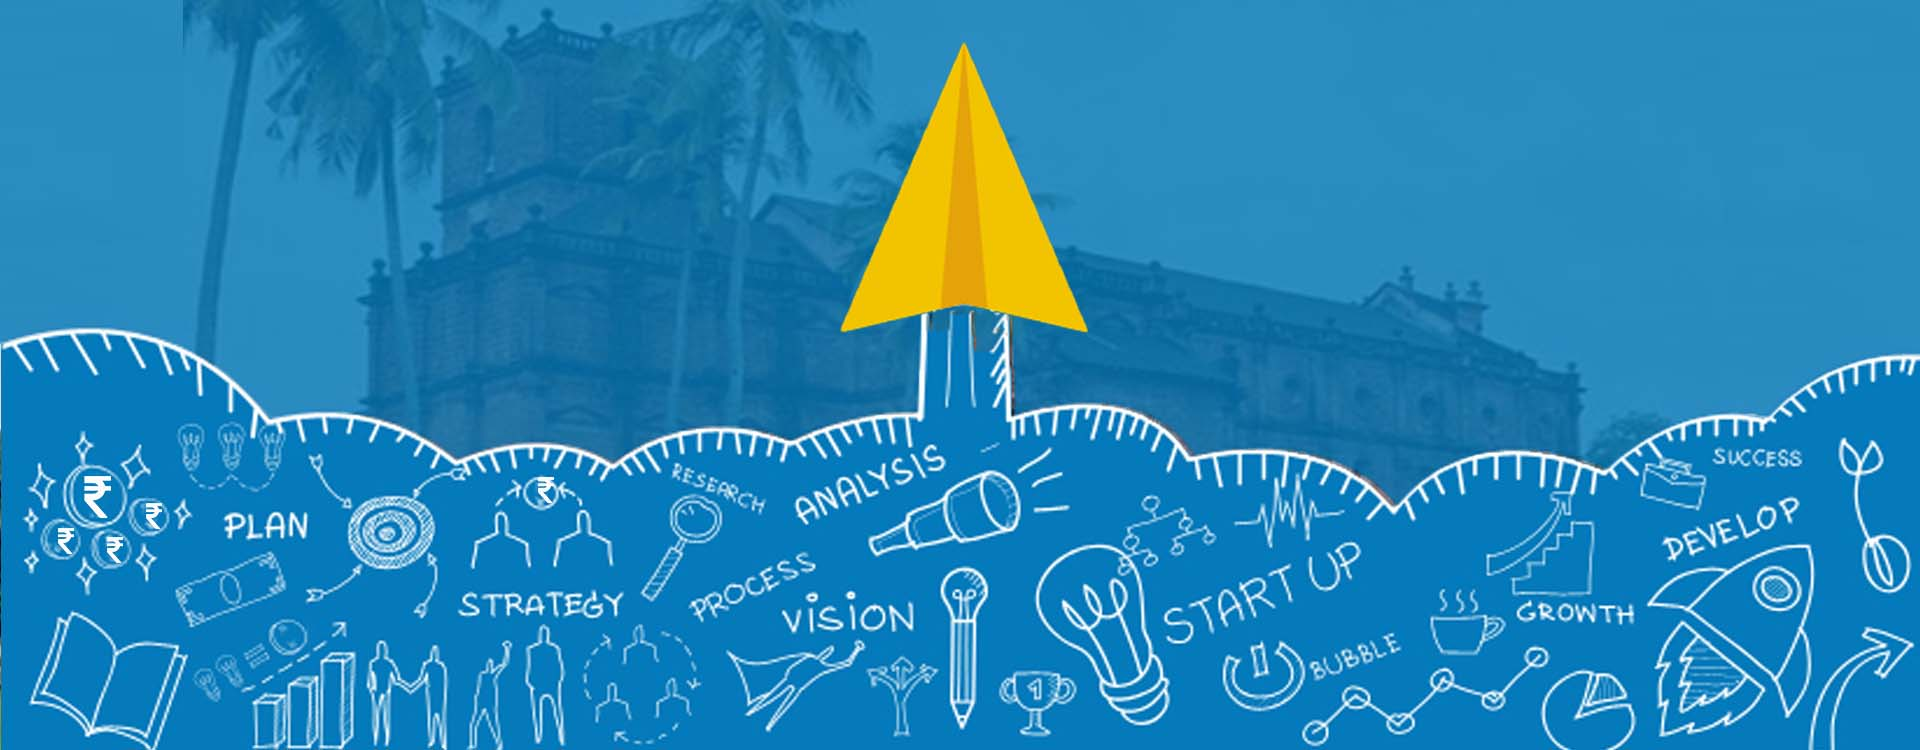 FiiRE is an incubation startup from Goa that focuses on tech startups to incubate.